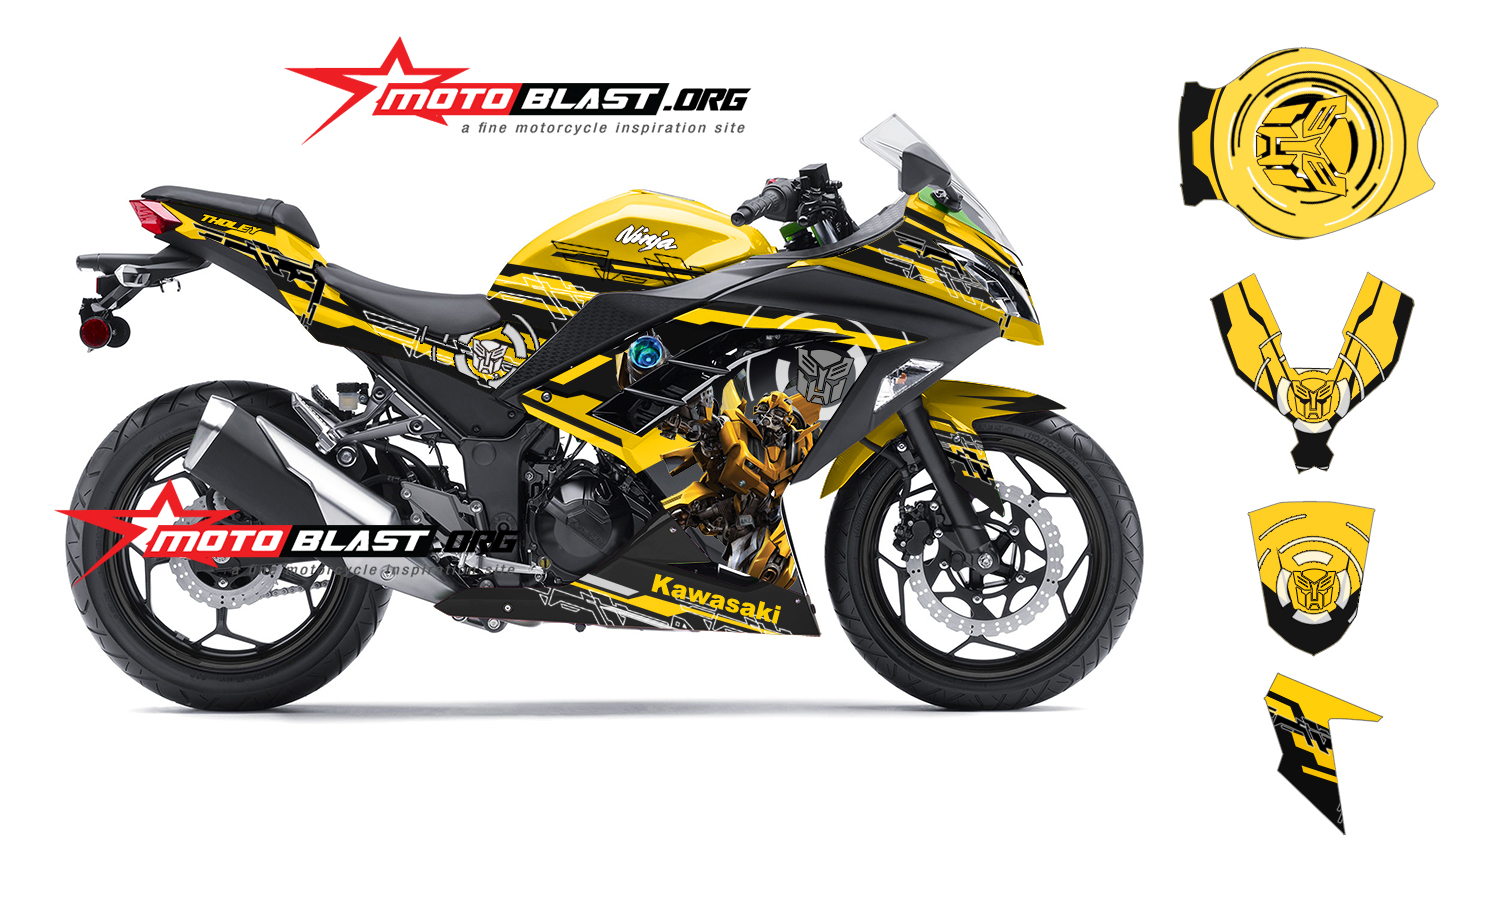 ninja-250-fi-yellow-bumble-bee-2